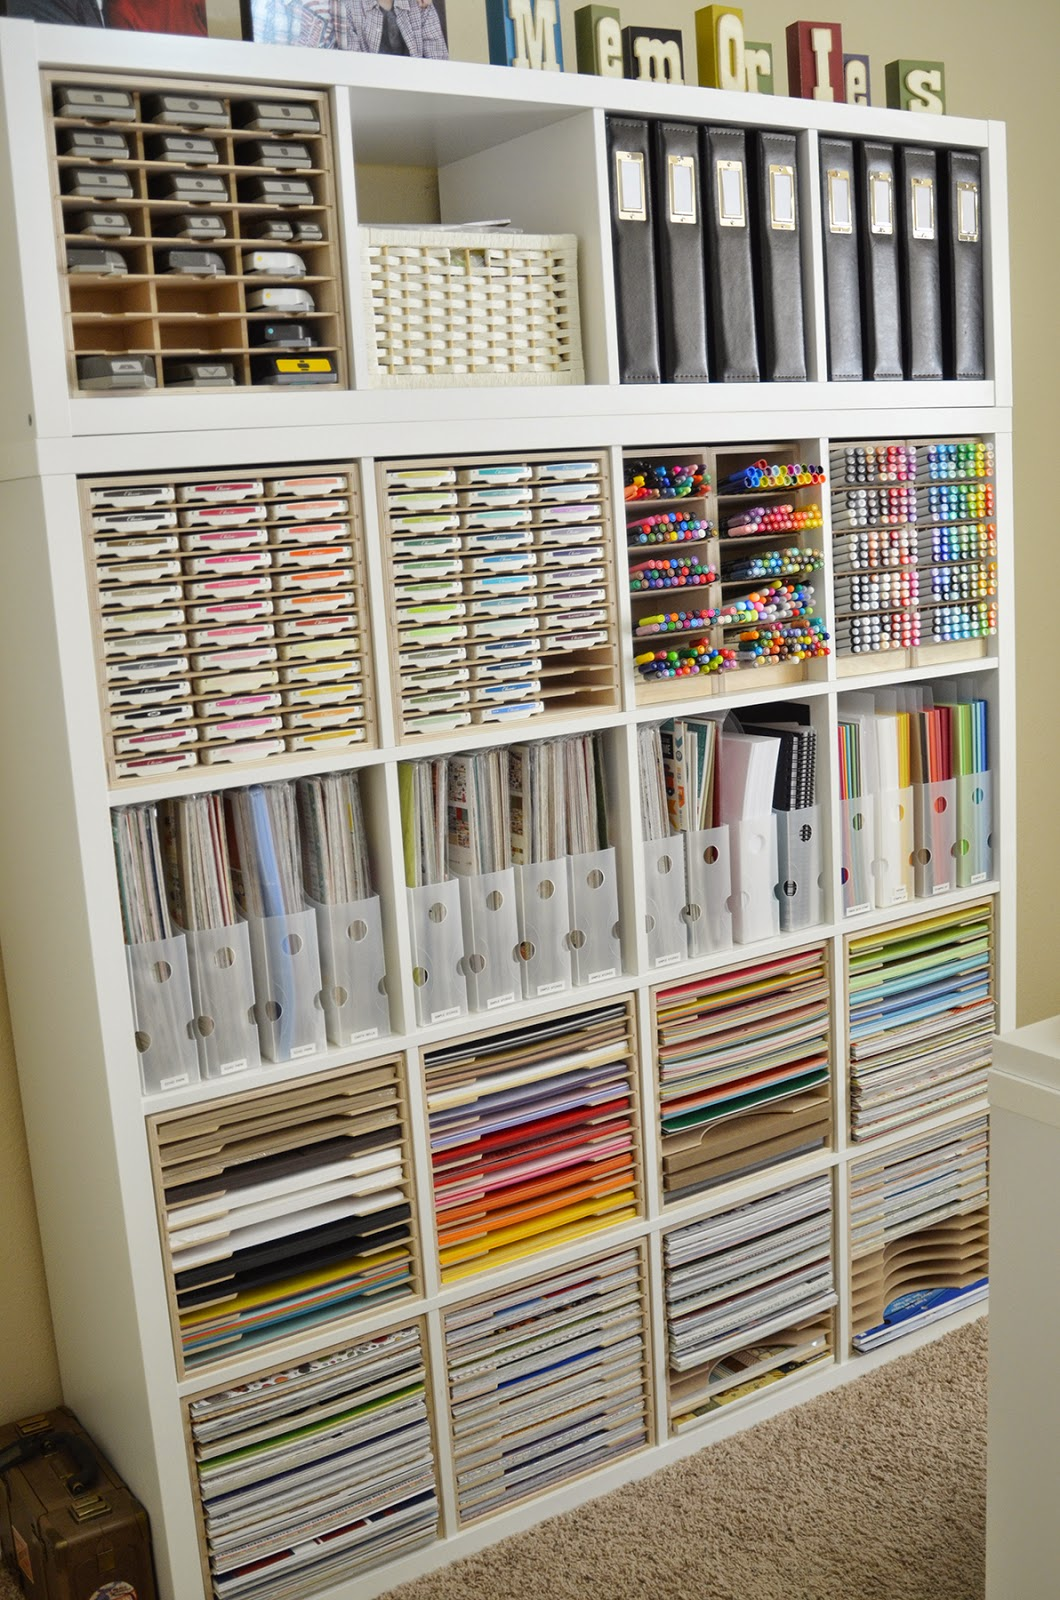 14 Breathtaking Craft Room Ideas - Hobbycraft Blog